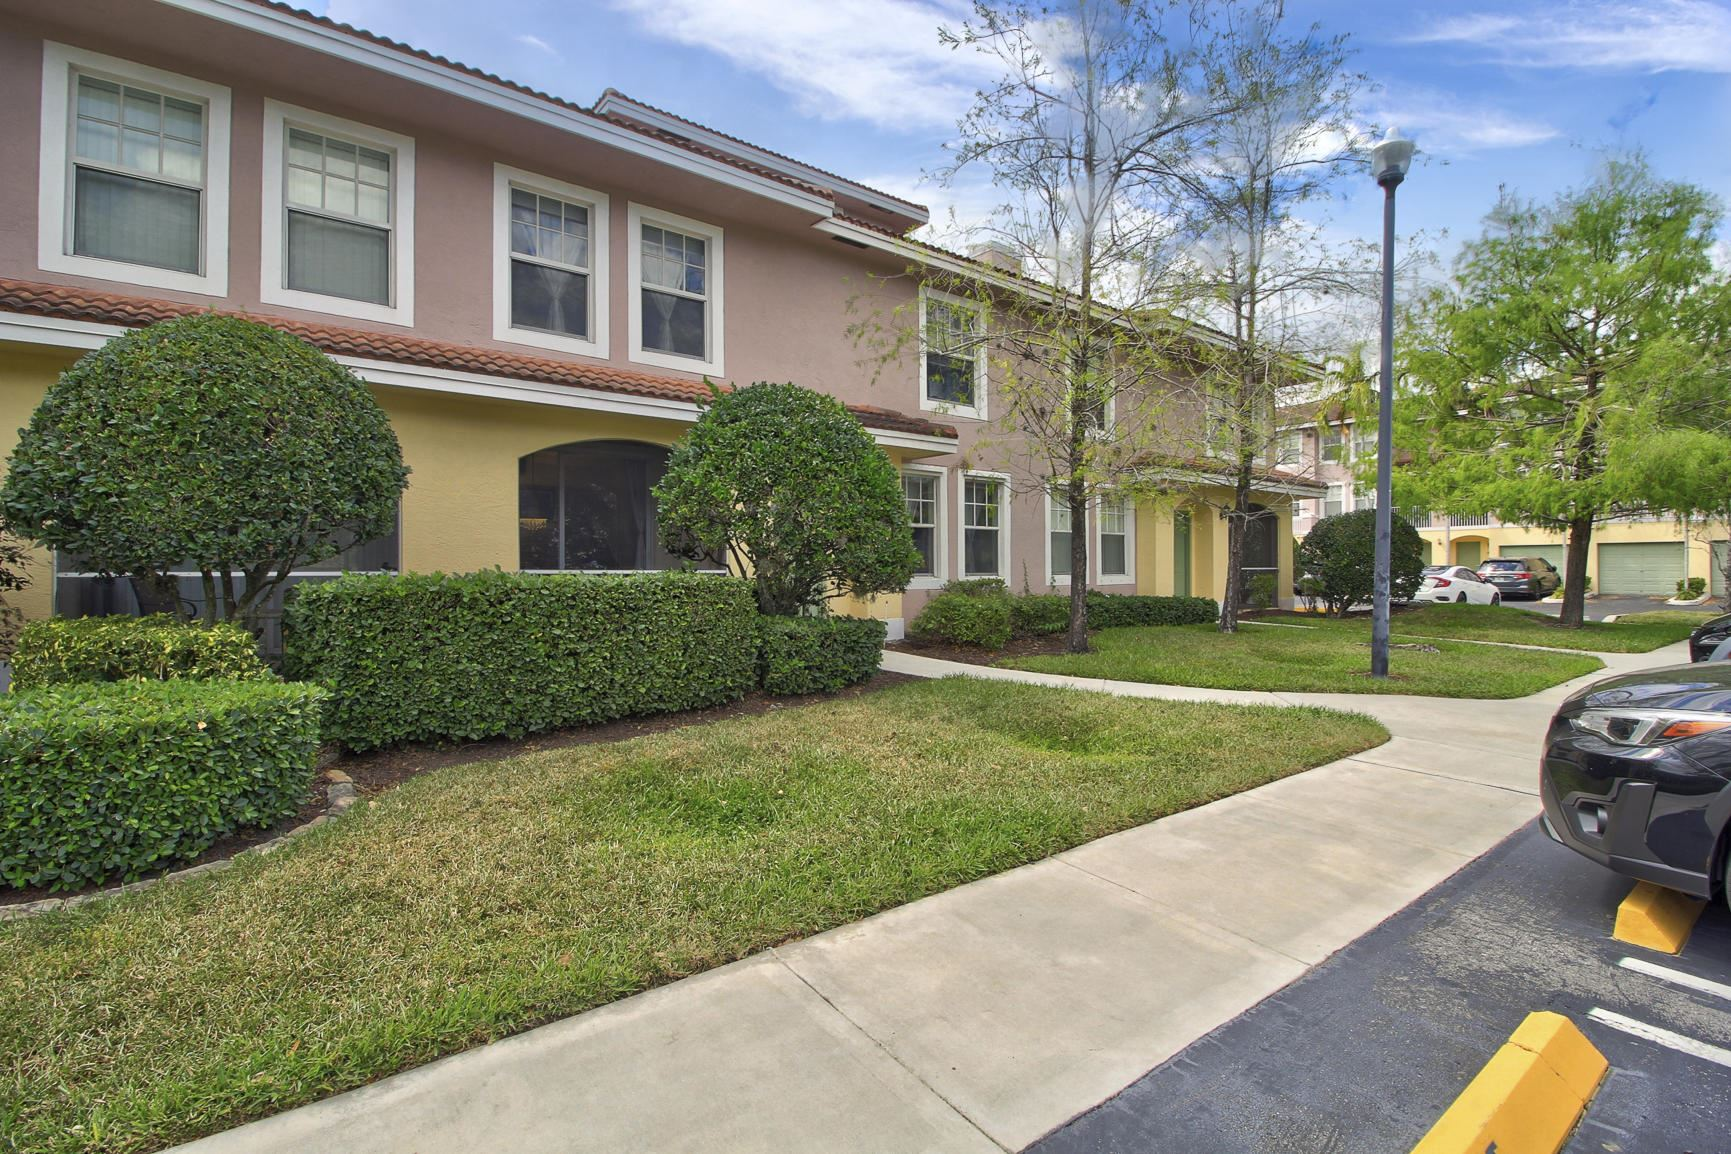 6424 W Sample Road #6424, Coral Springs, FL 33067 - #: RX-10705707